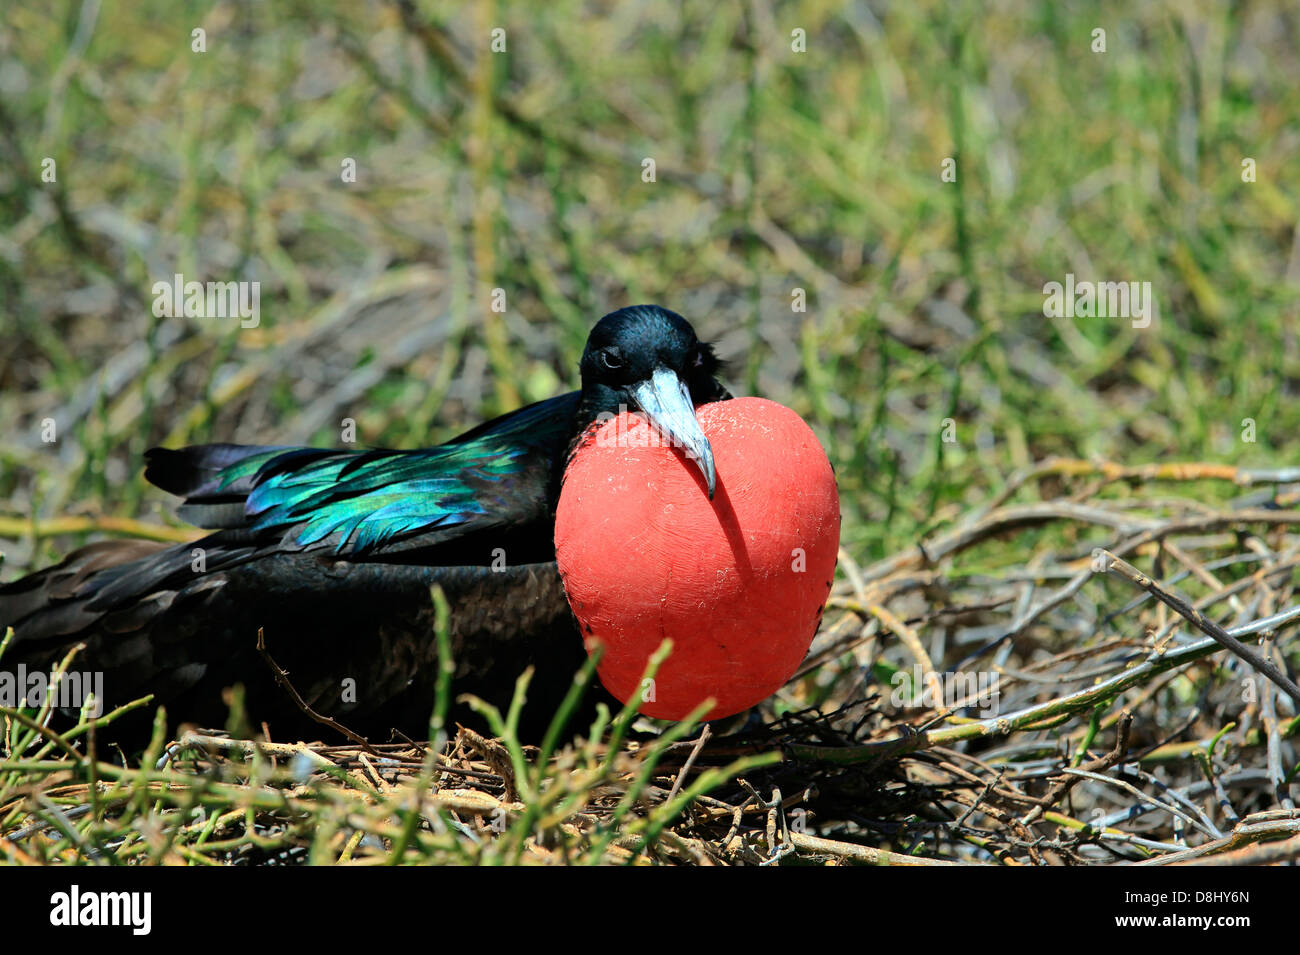 Male Magnificent frigate bird with inflated red gular pouch, Galapagos Islands - Stock Image